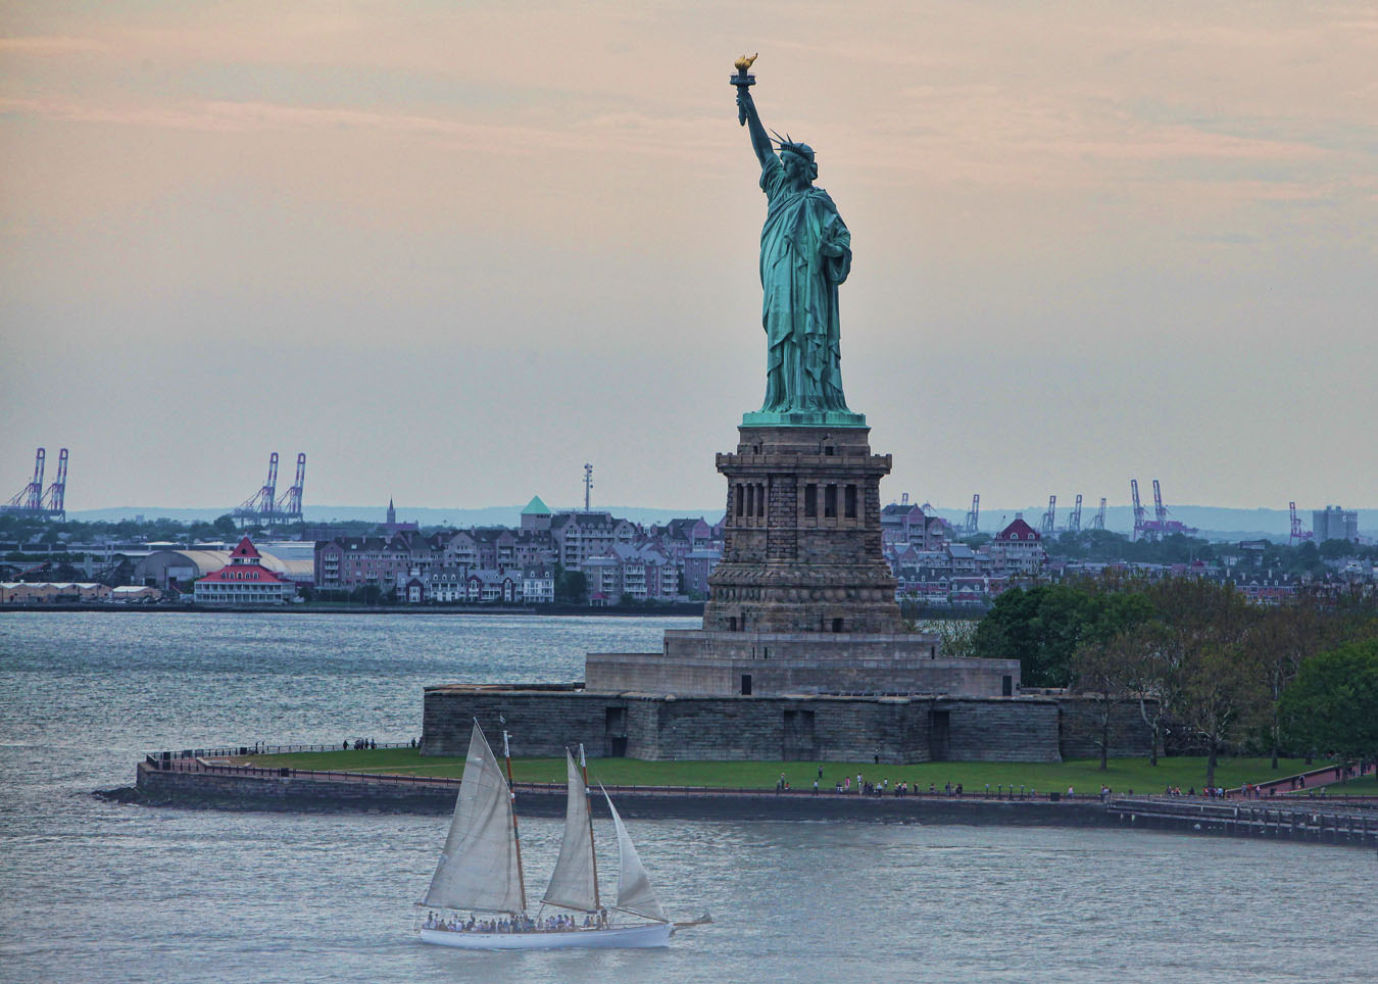 A view of the Statue of Liberty in New York City